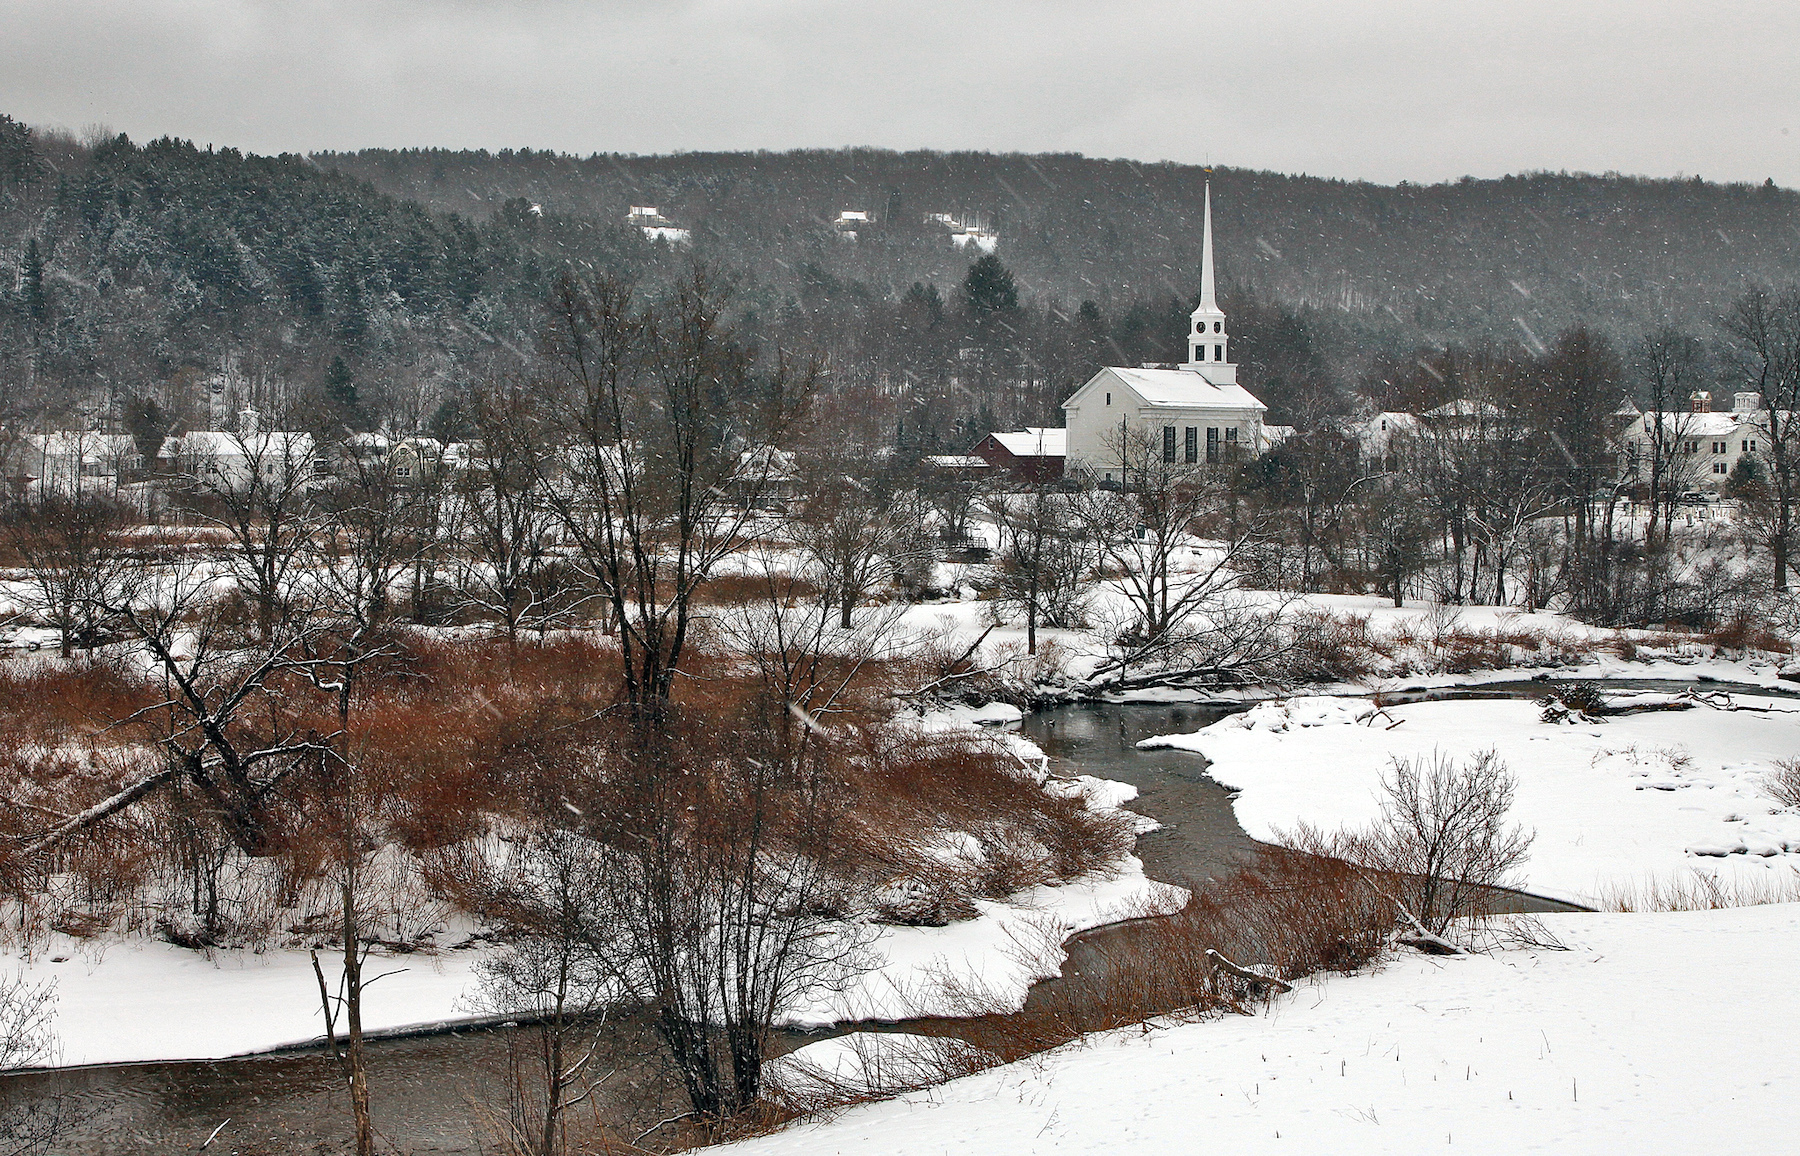 Stowe, Vermont (credit: Flickr/Peter Rintels)